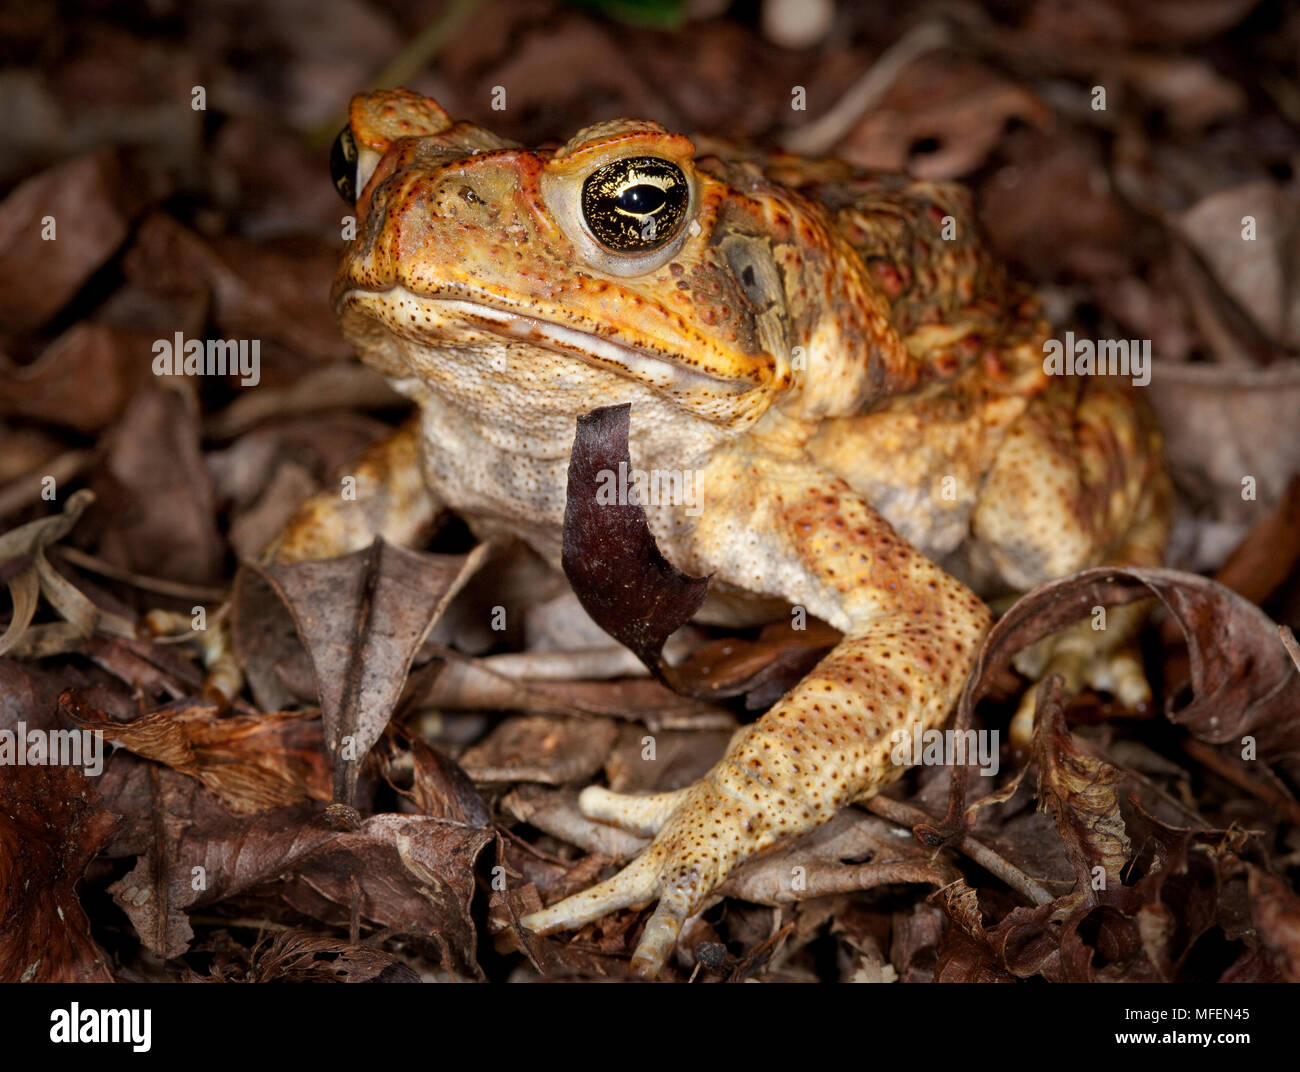 Cane Toad (Rhinella marina), Fam. Bufonidae, Introduced pest species (to control cane beetles - unsuccessfully) and highly toxic to most predators suc Stock Photo